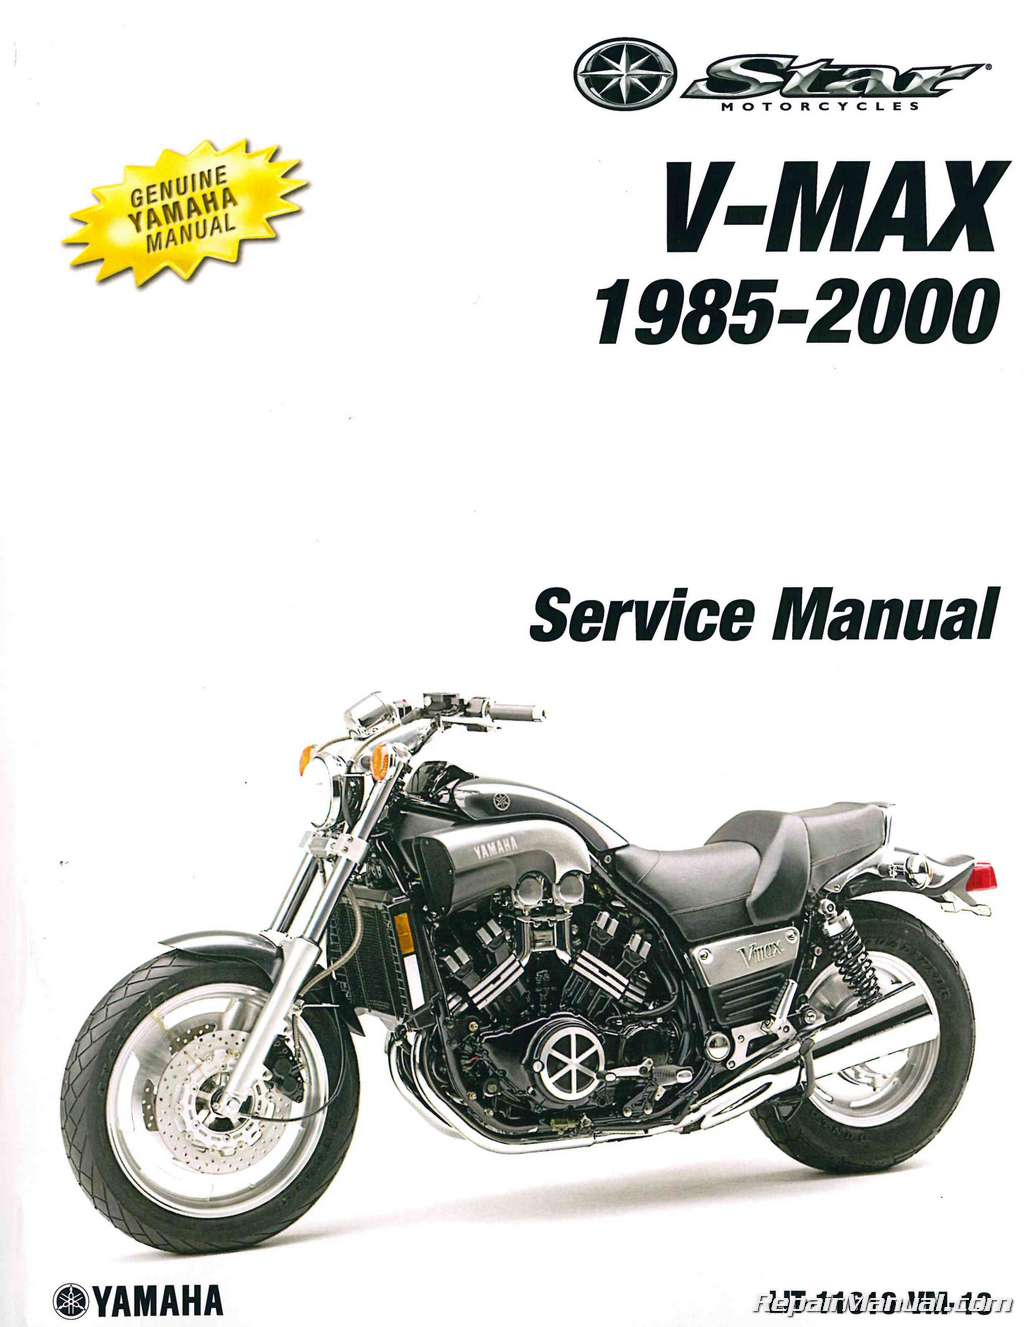 yamaha vmax wiring diagram data wiring diagram u2022 rh chamaela co yamaha vmax 150 sho owners manual 2005 yamaha 150 vmax owners manual